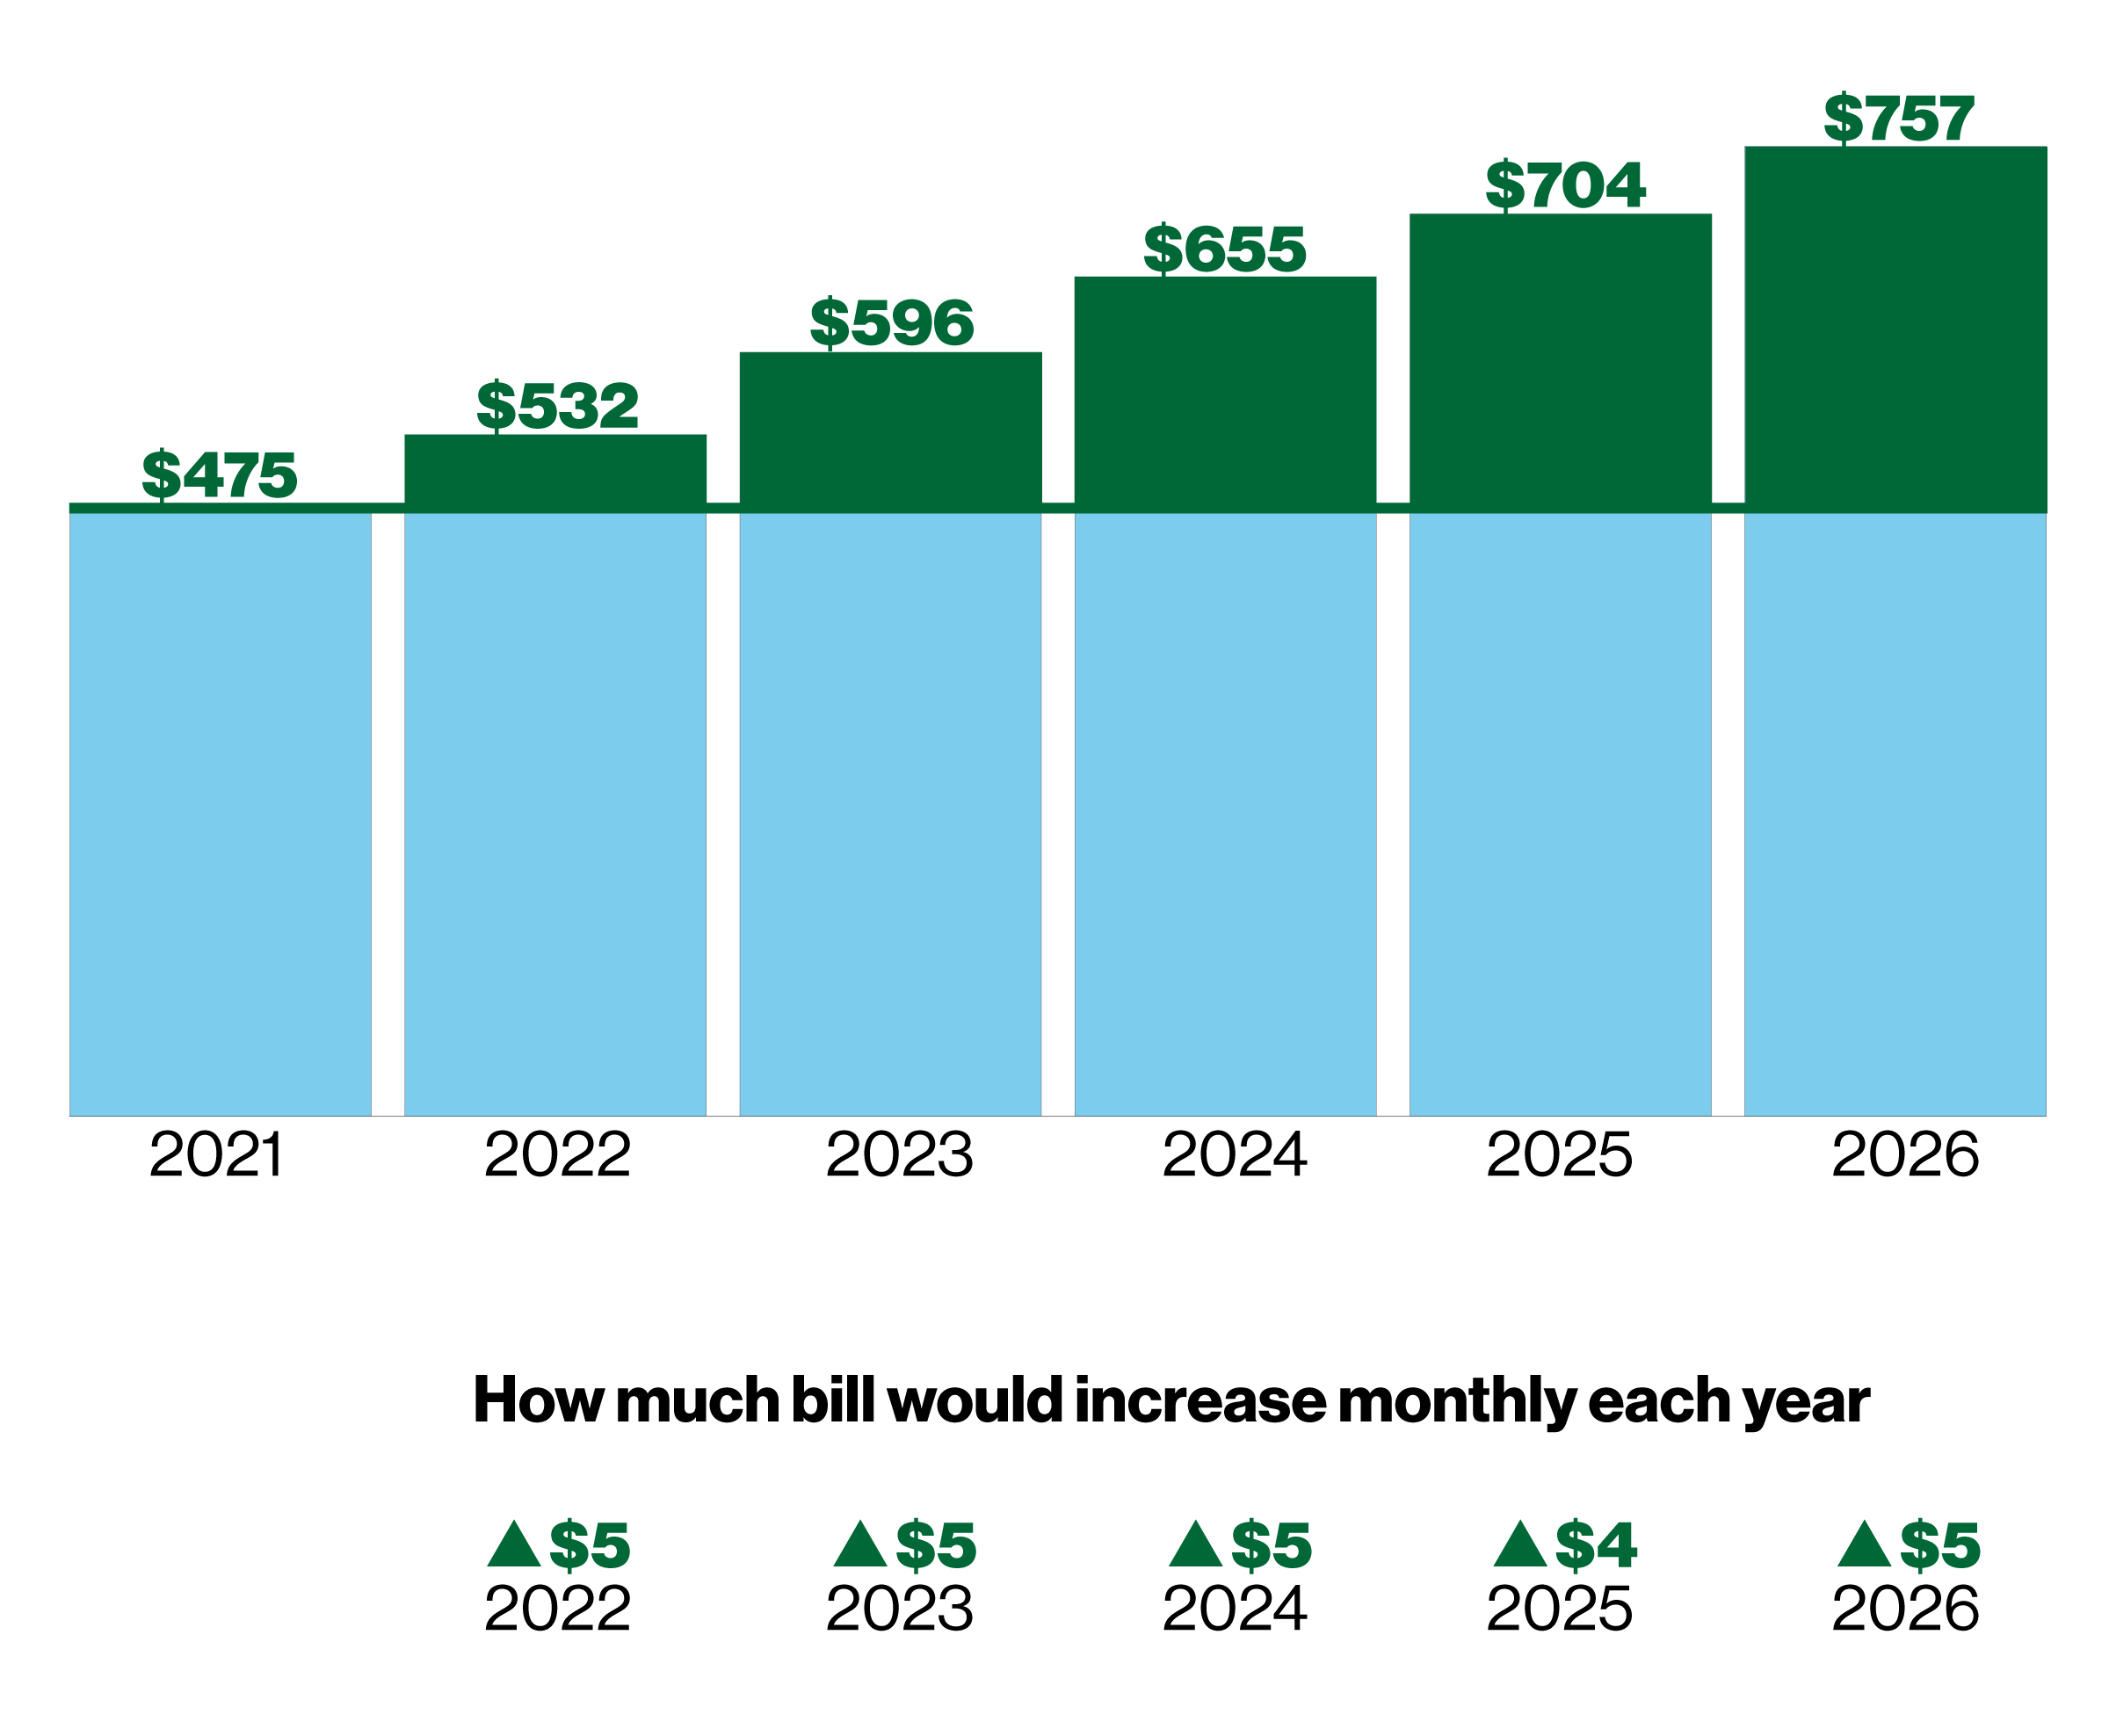 Bar chart showing annual sewer bill increase.